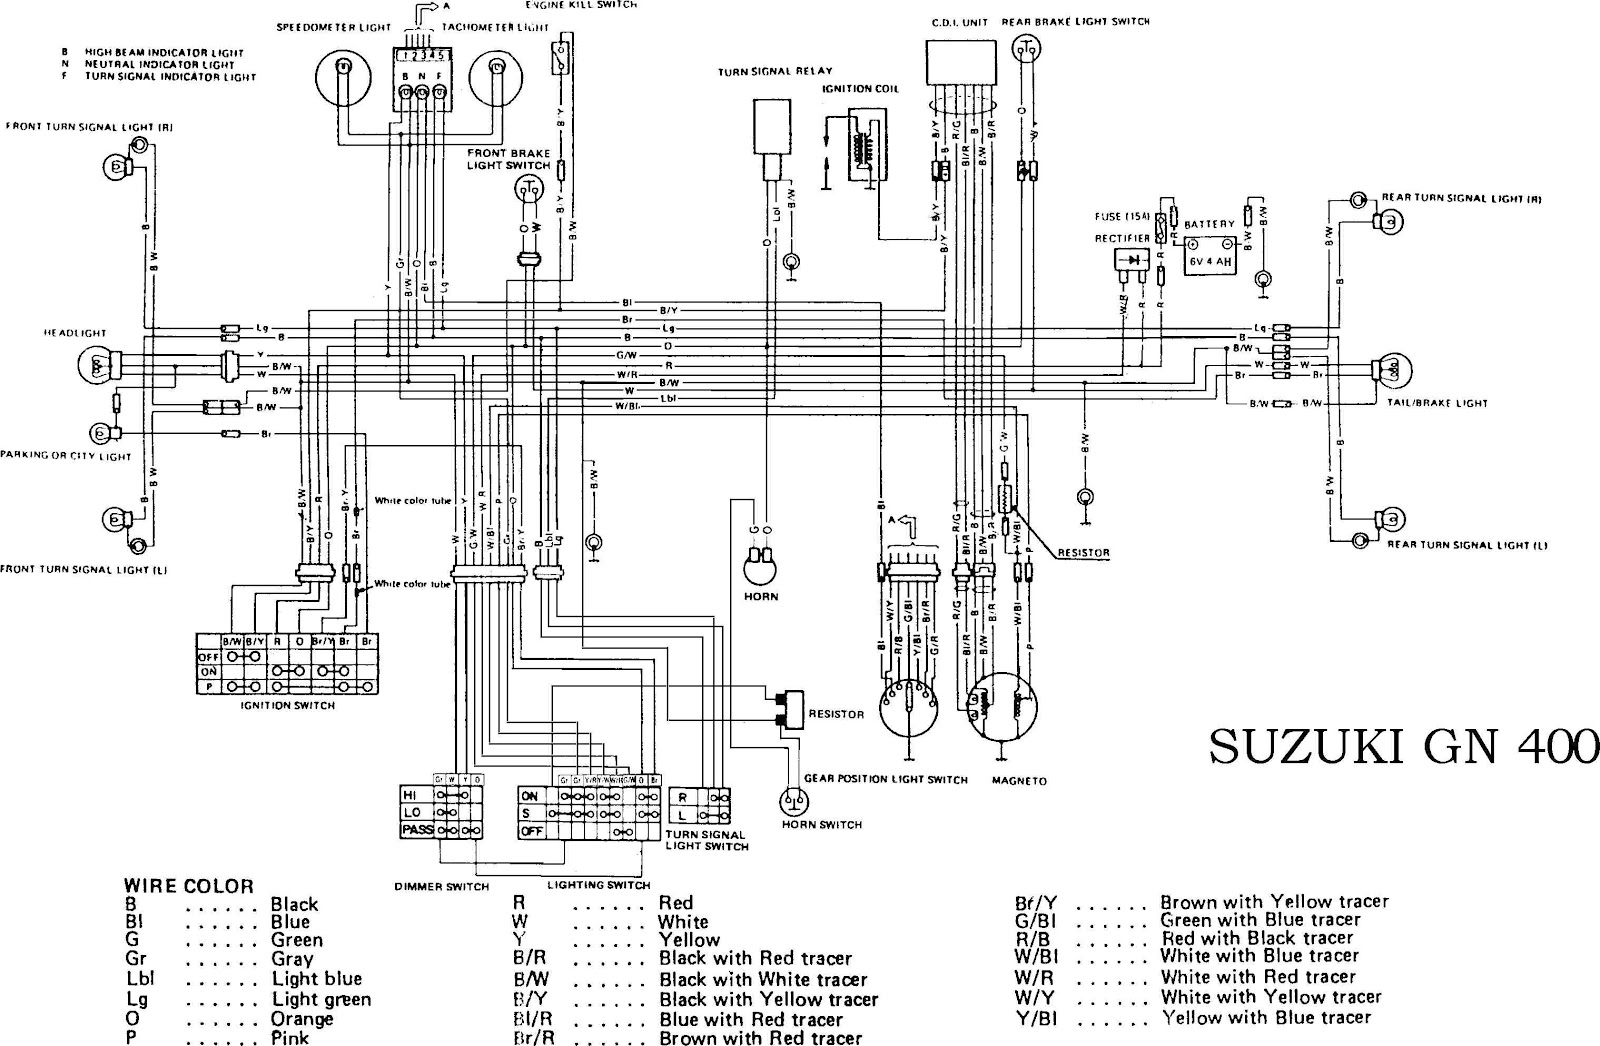 6 wire turn signal wiring diagram